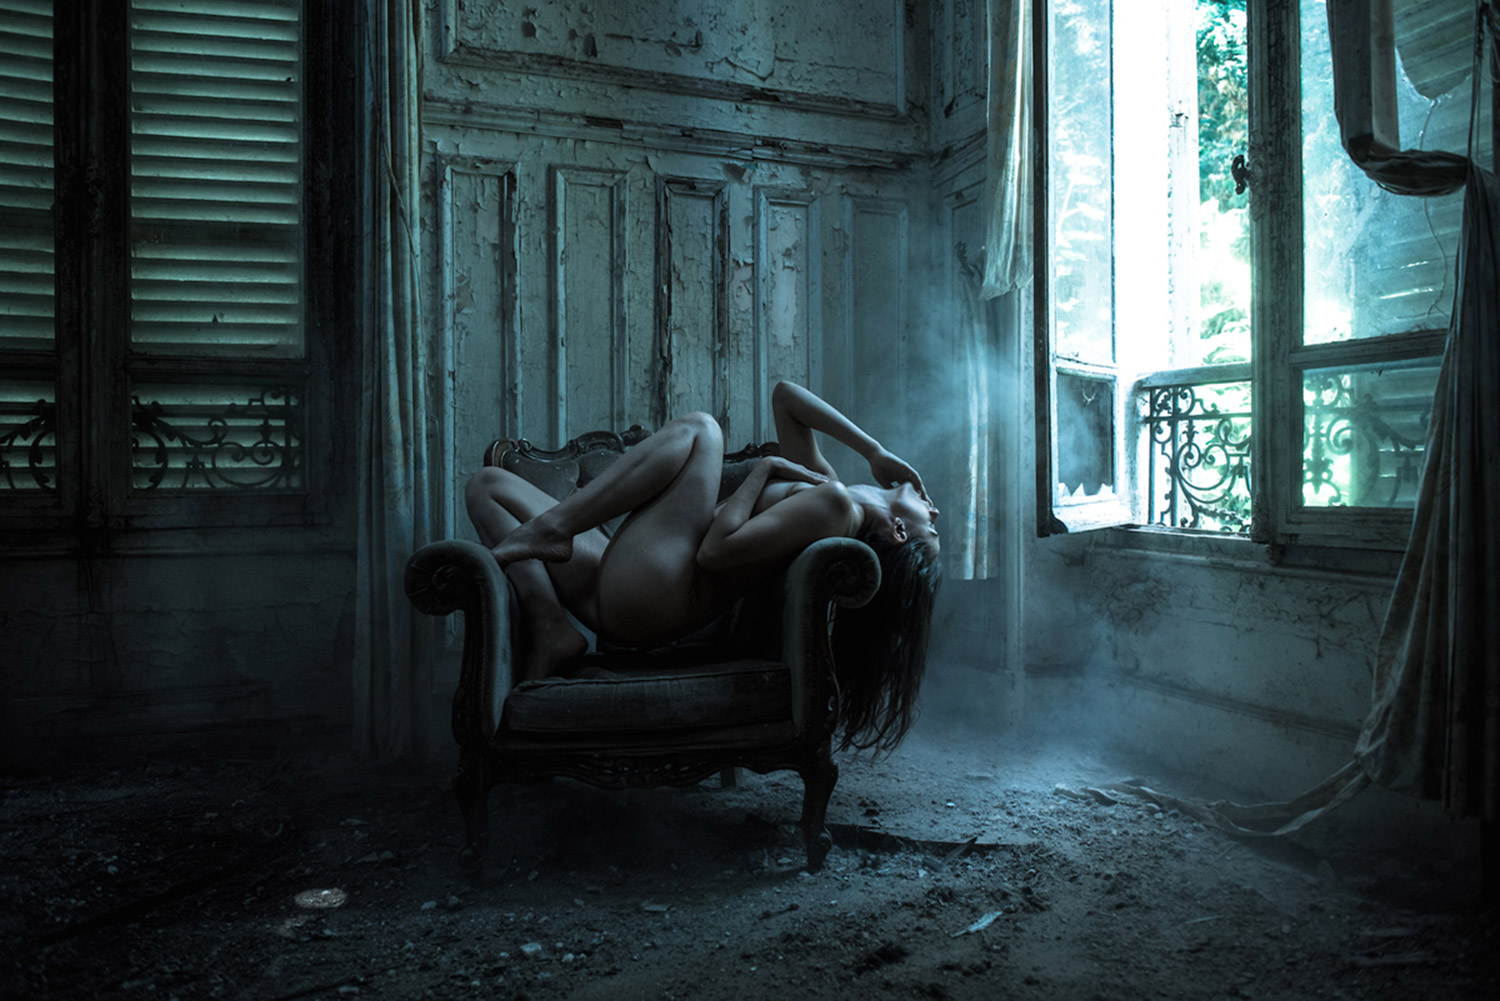 Jeremy Gibbs, Ayla in Decay, nude posing in abandoned building, dark passion